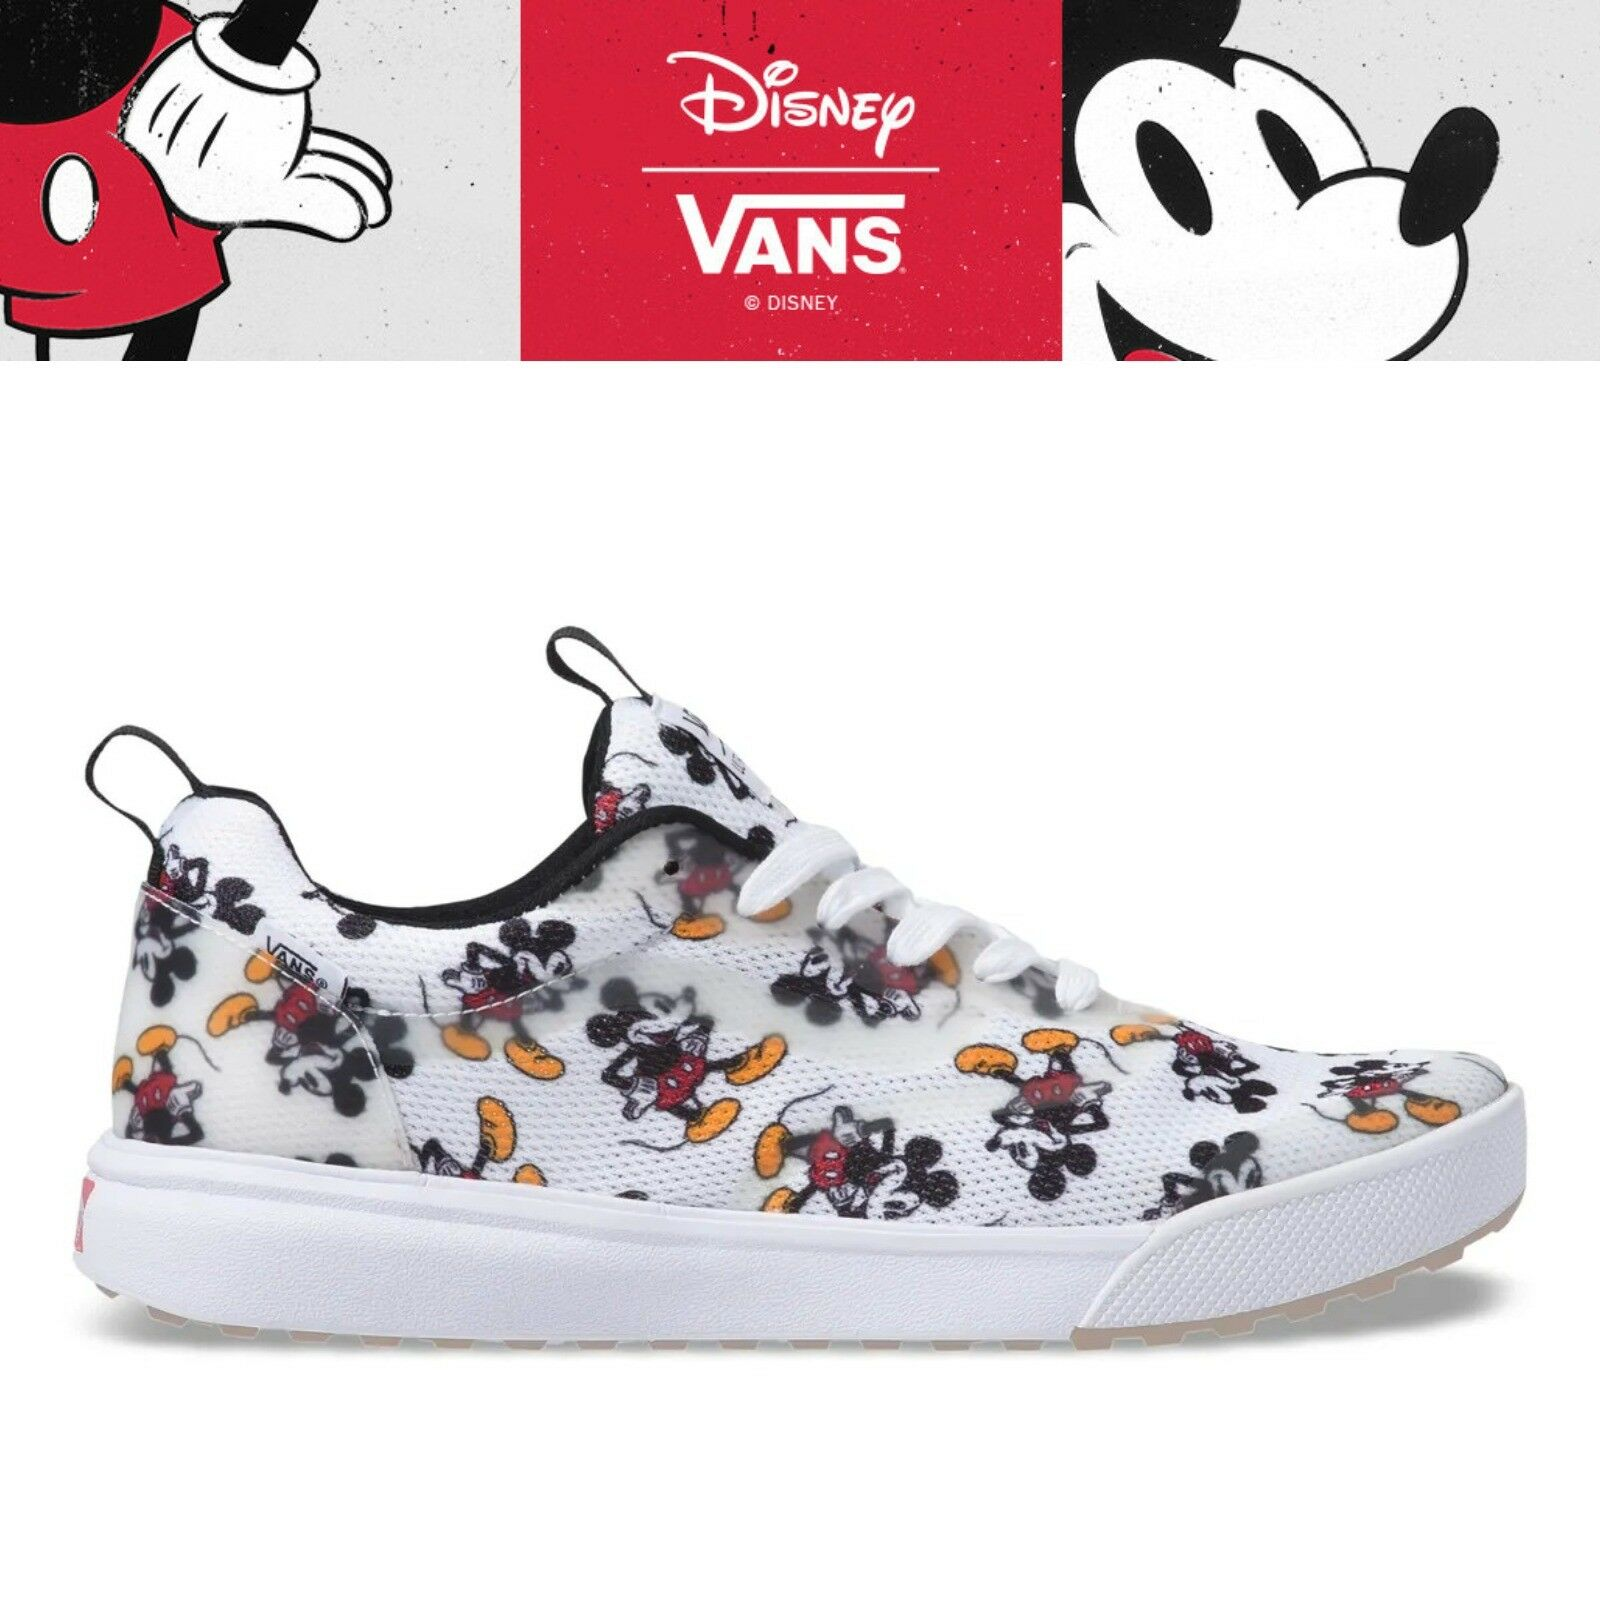 New VANS X DISNEY UltraRange Rapidweld Mickey Mouse 90th Collection - White